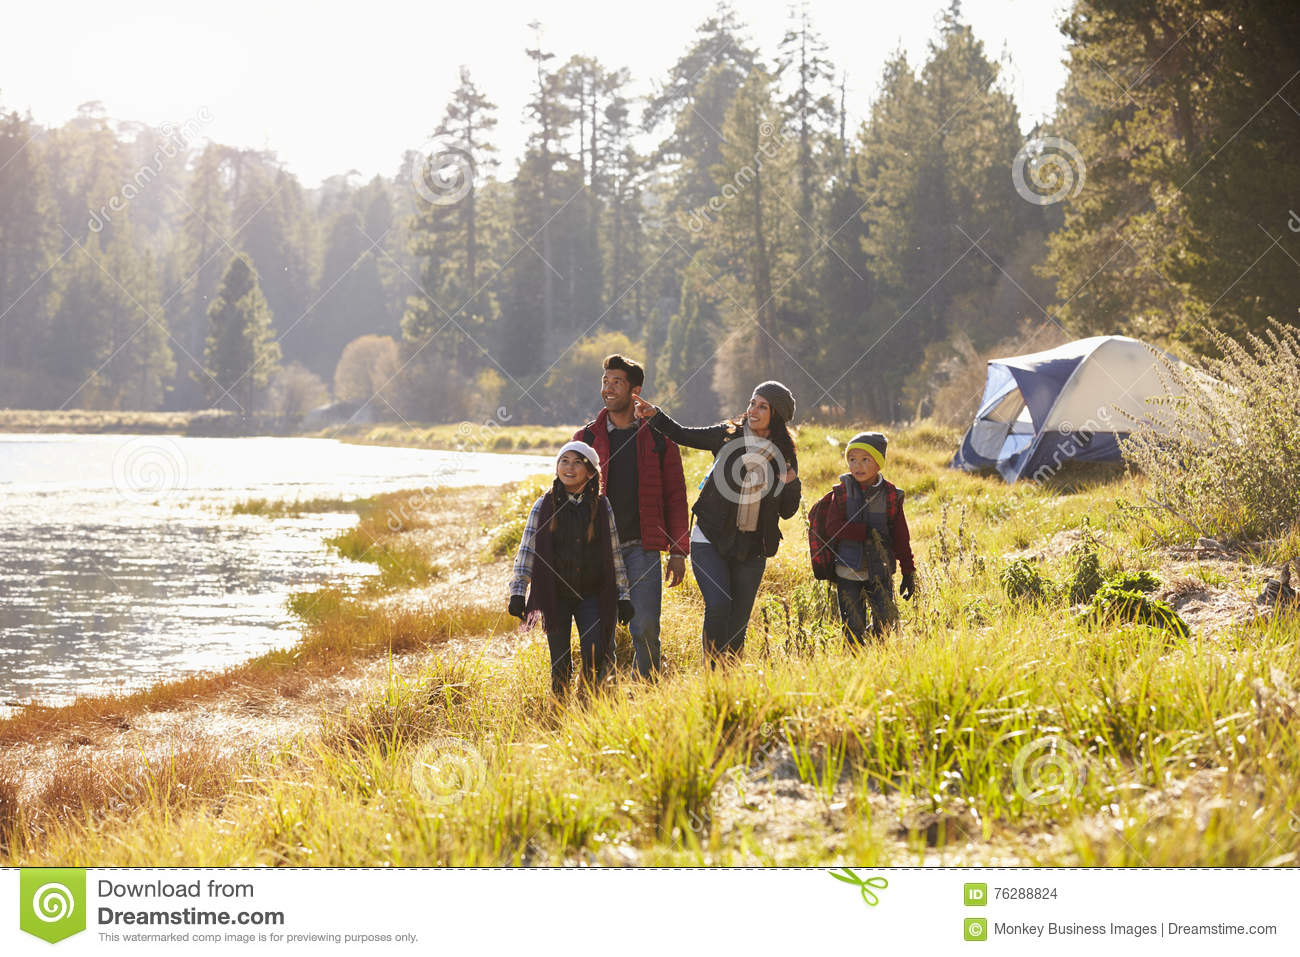 Family on a camping trip walking near a lake looking away